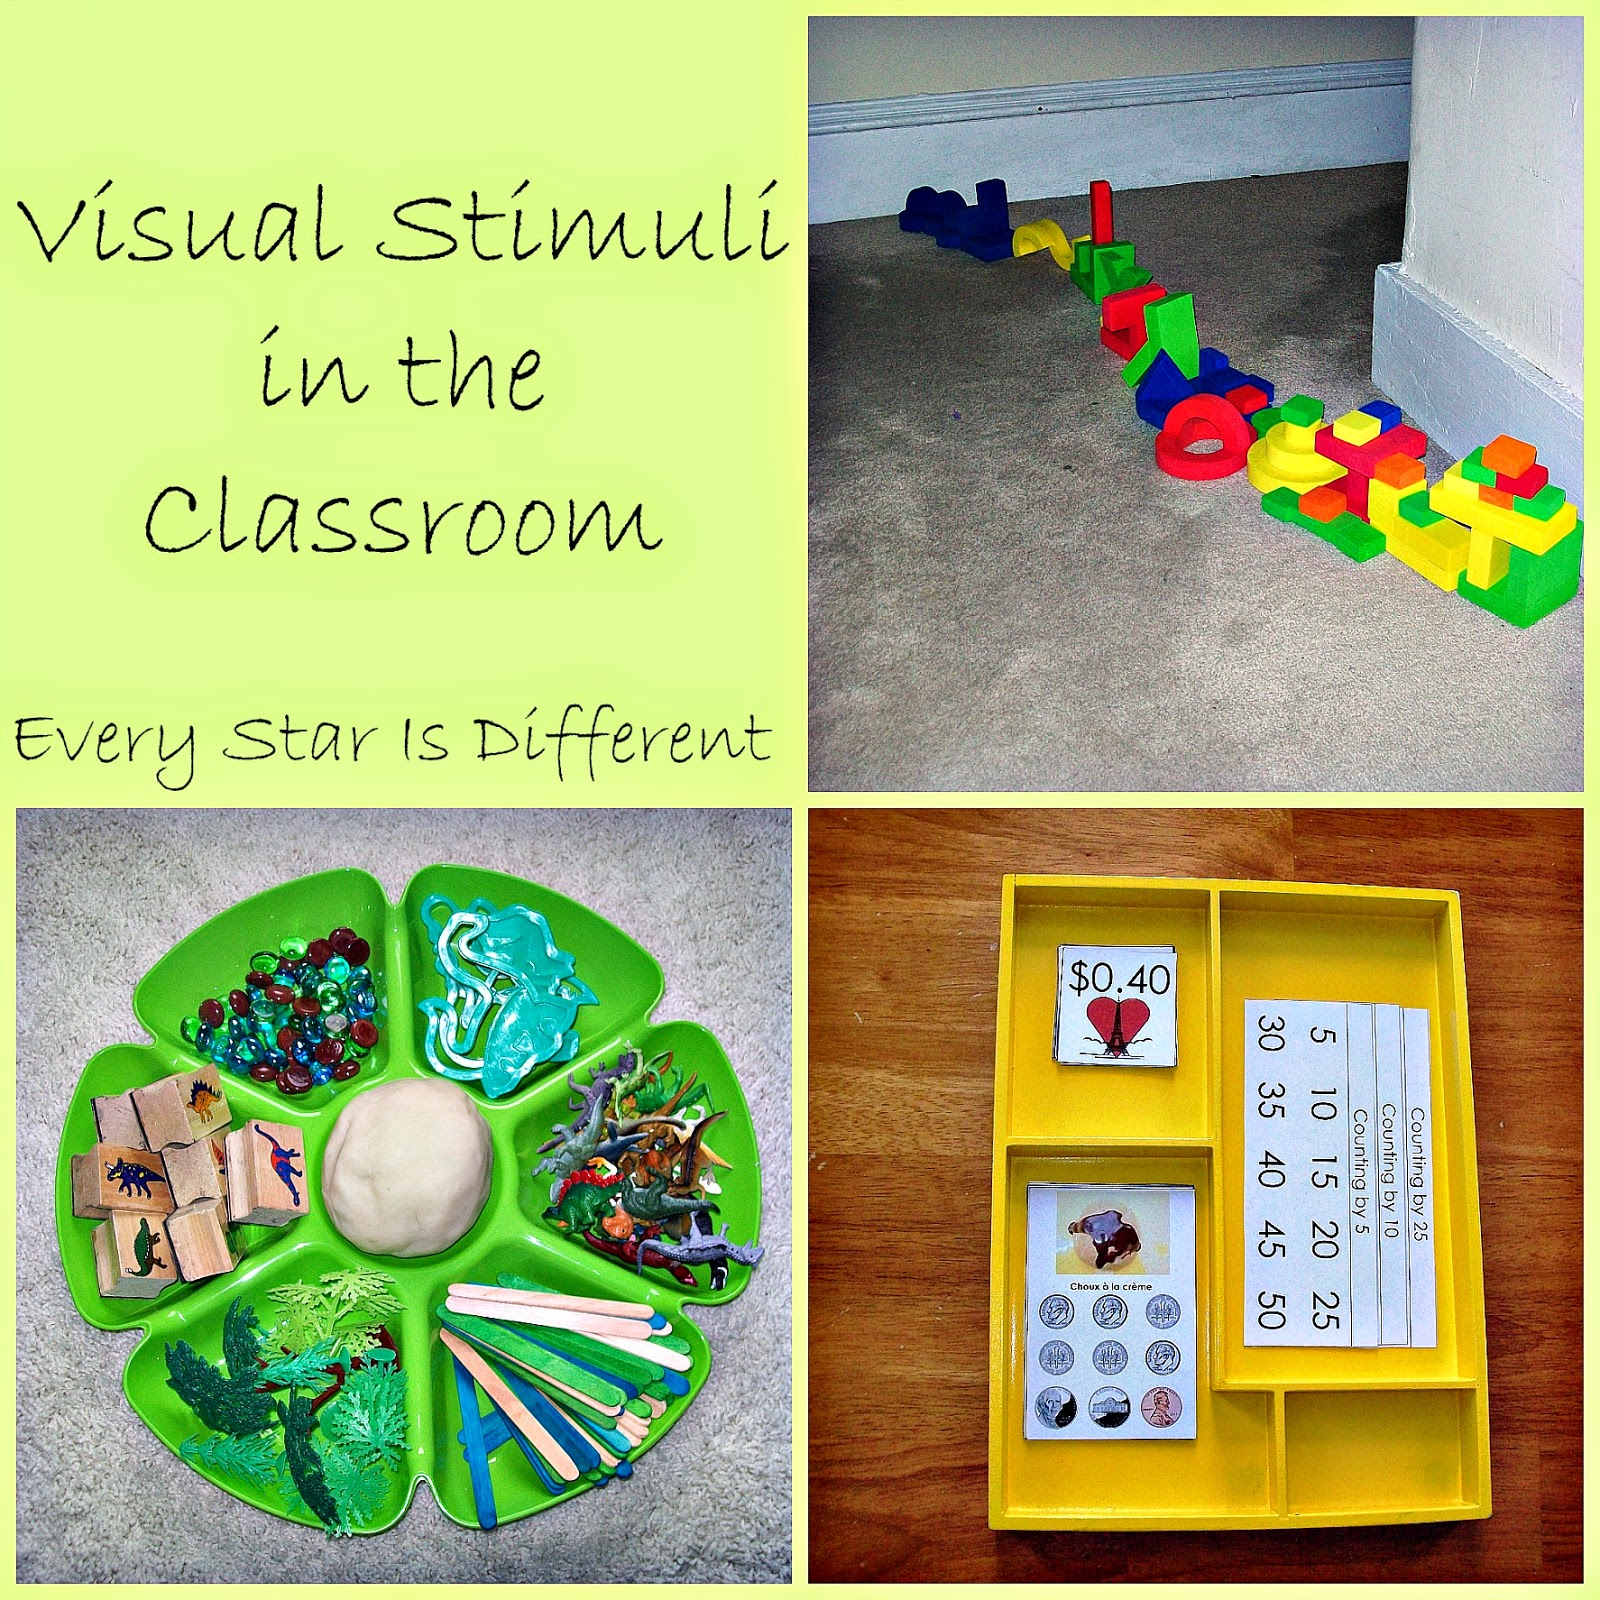 Visual Stimuli in the Classroom